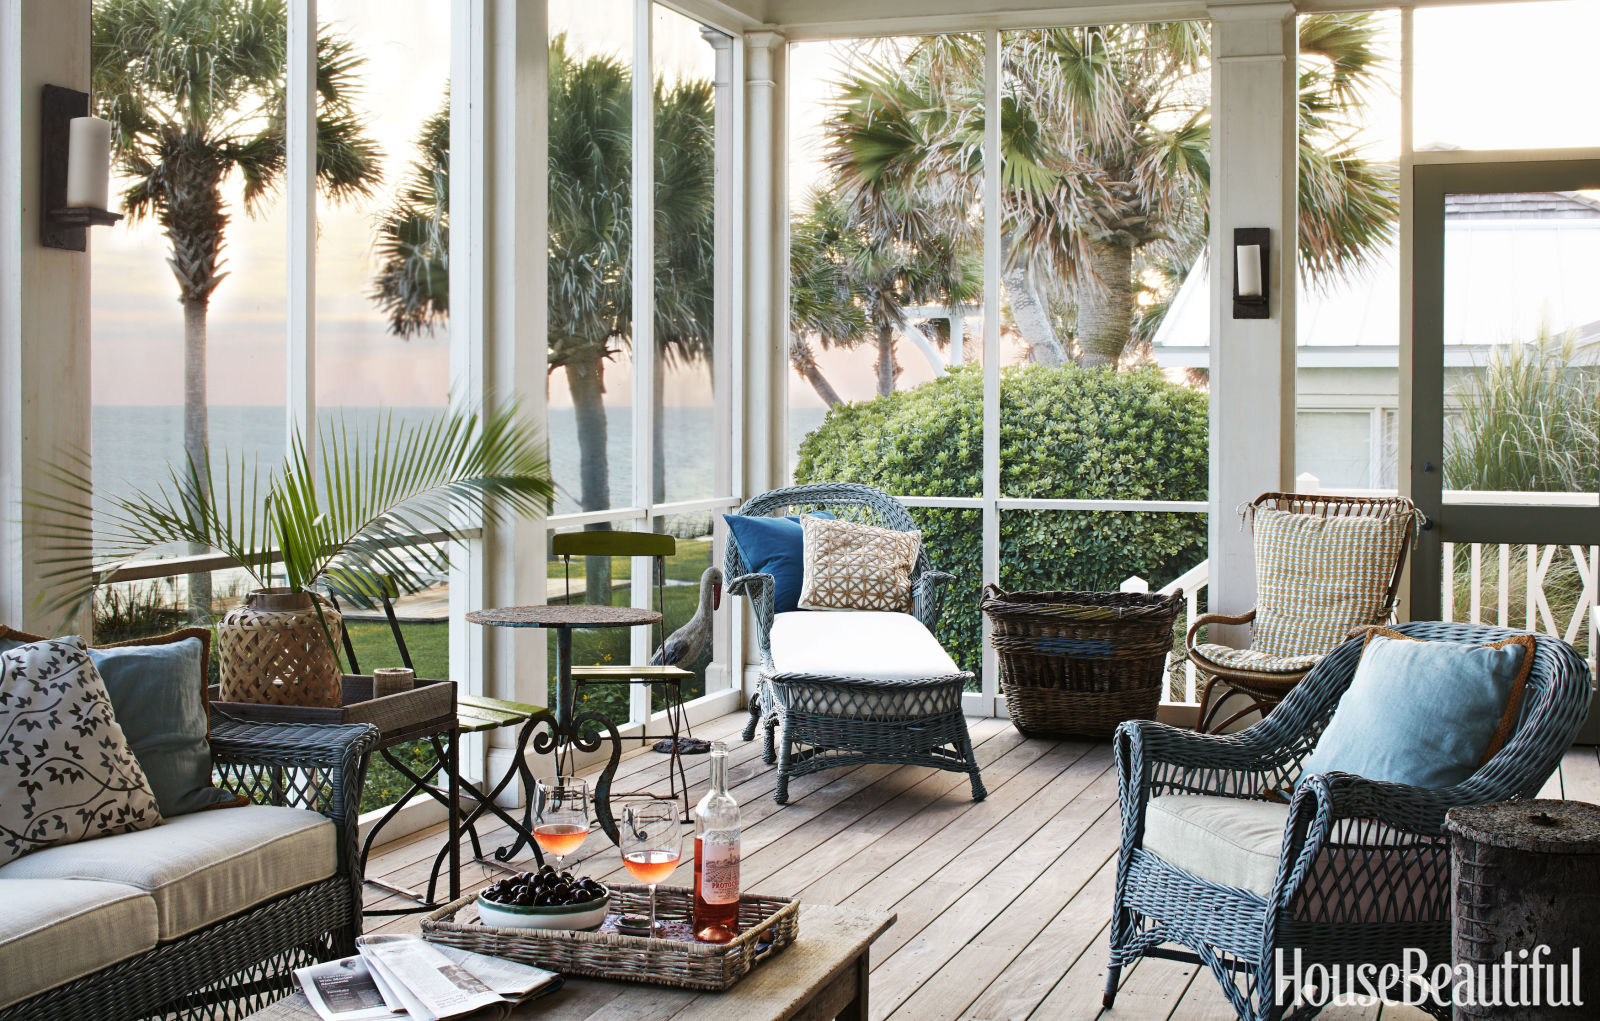 Front Porch Decorating Ideas 30 best porch decorating ideas - summer porch design tips